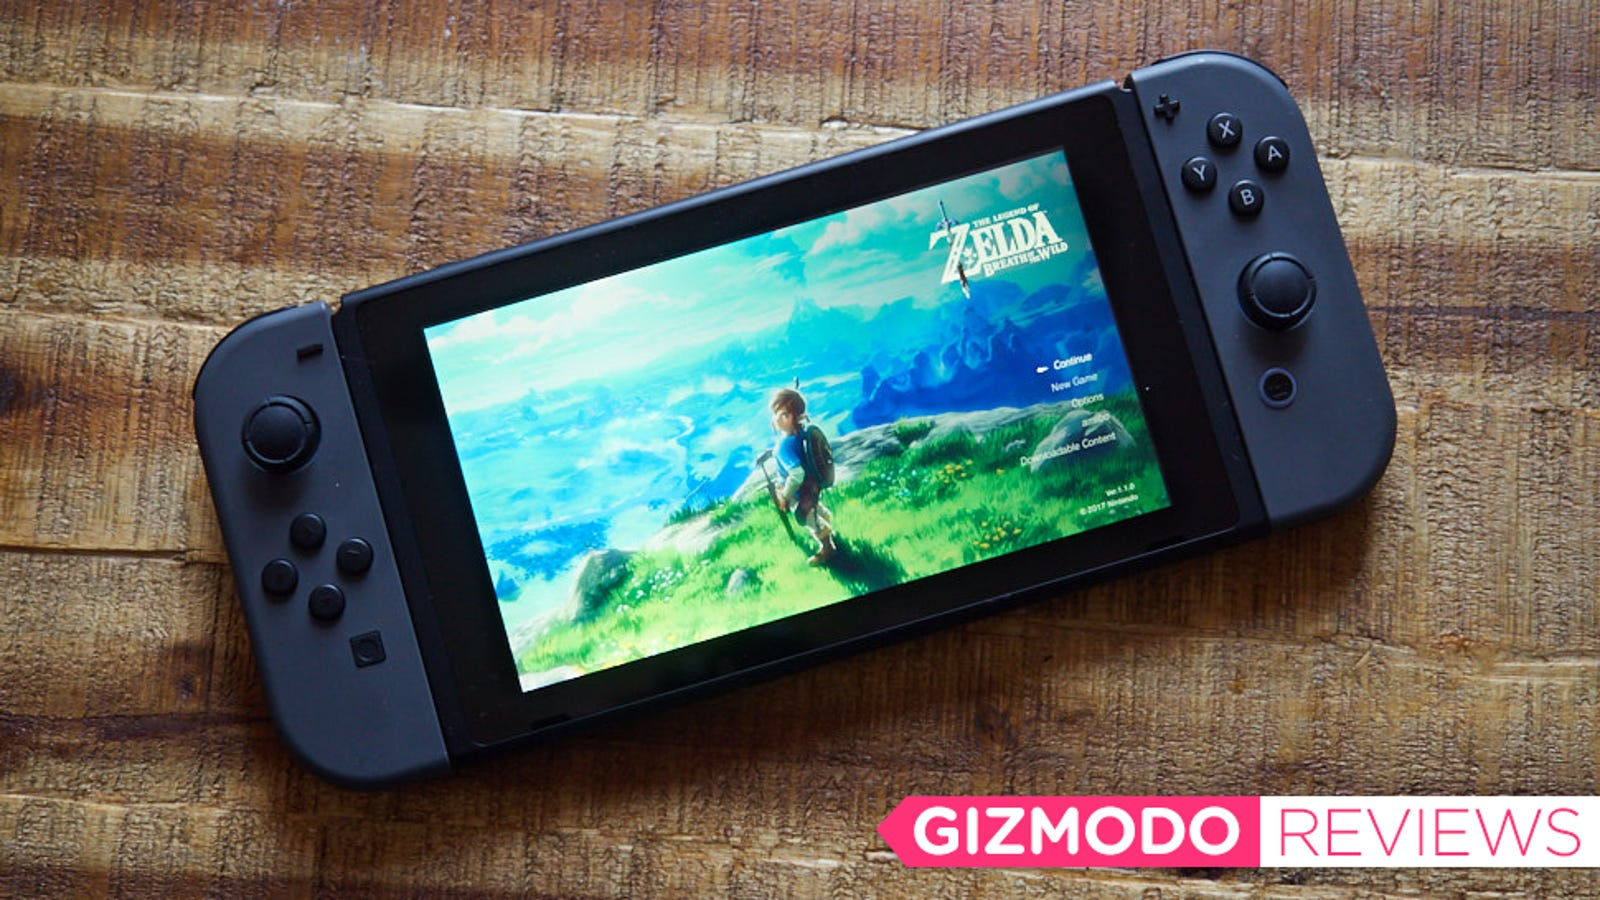 nintendo switch review plays zelda great doesn t do much else